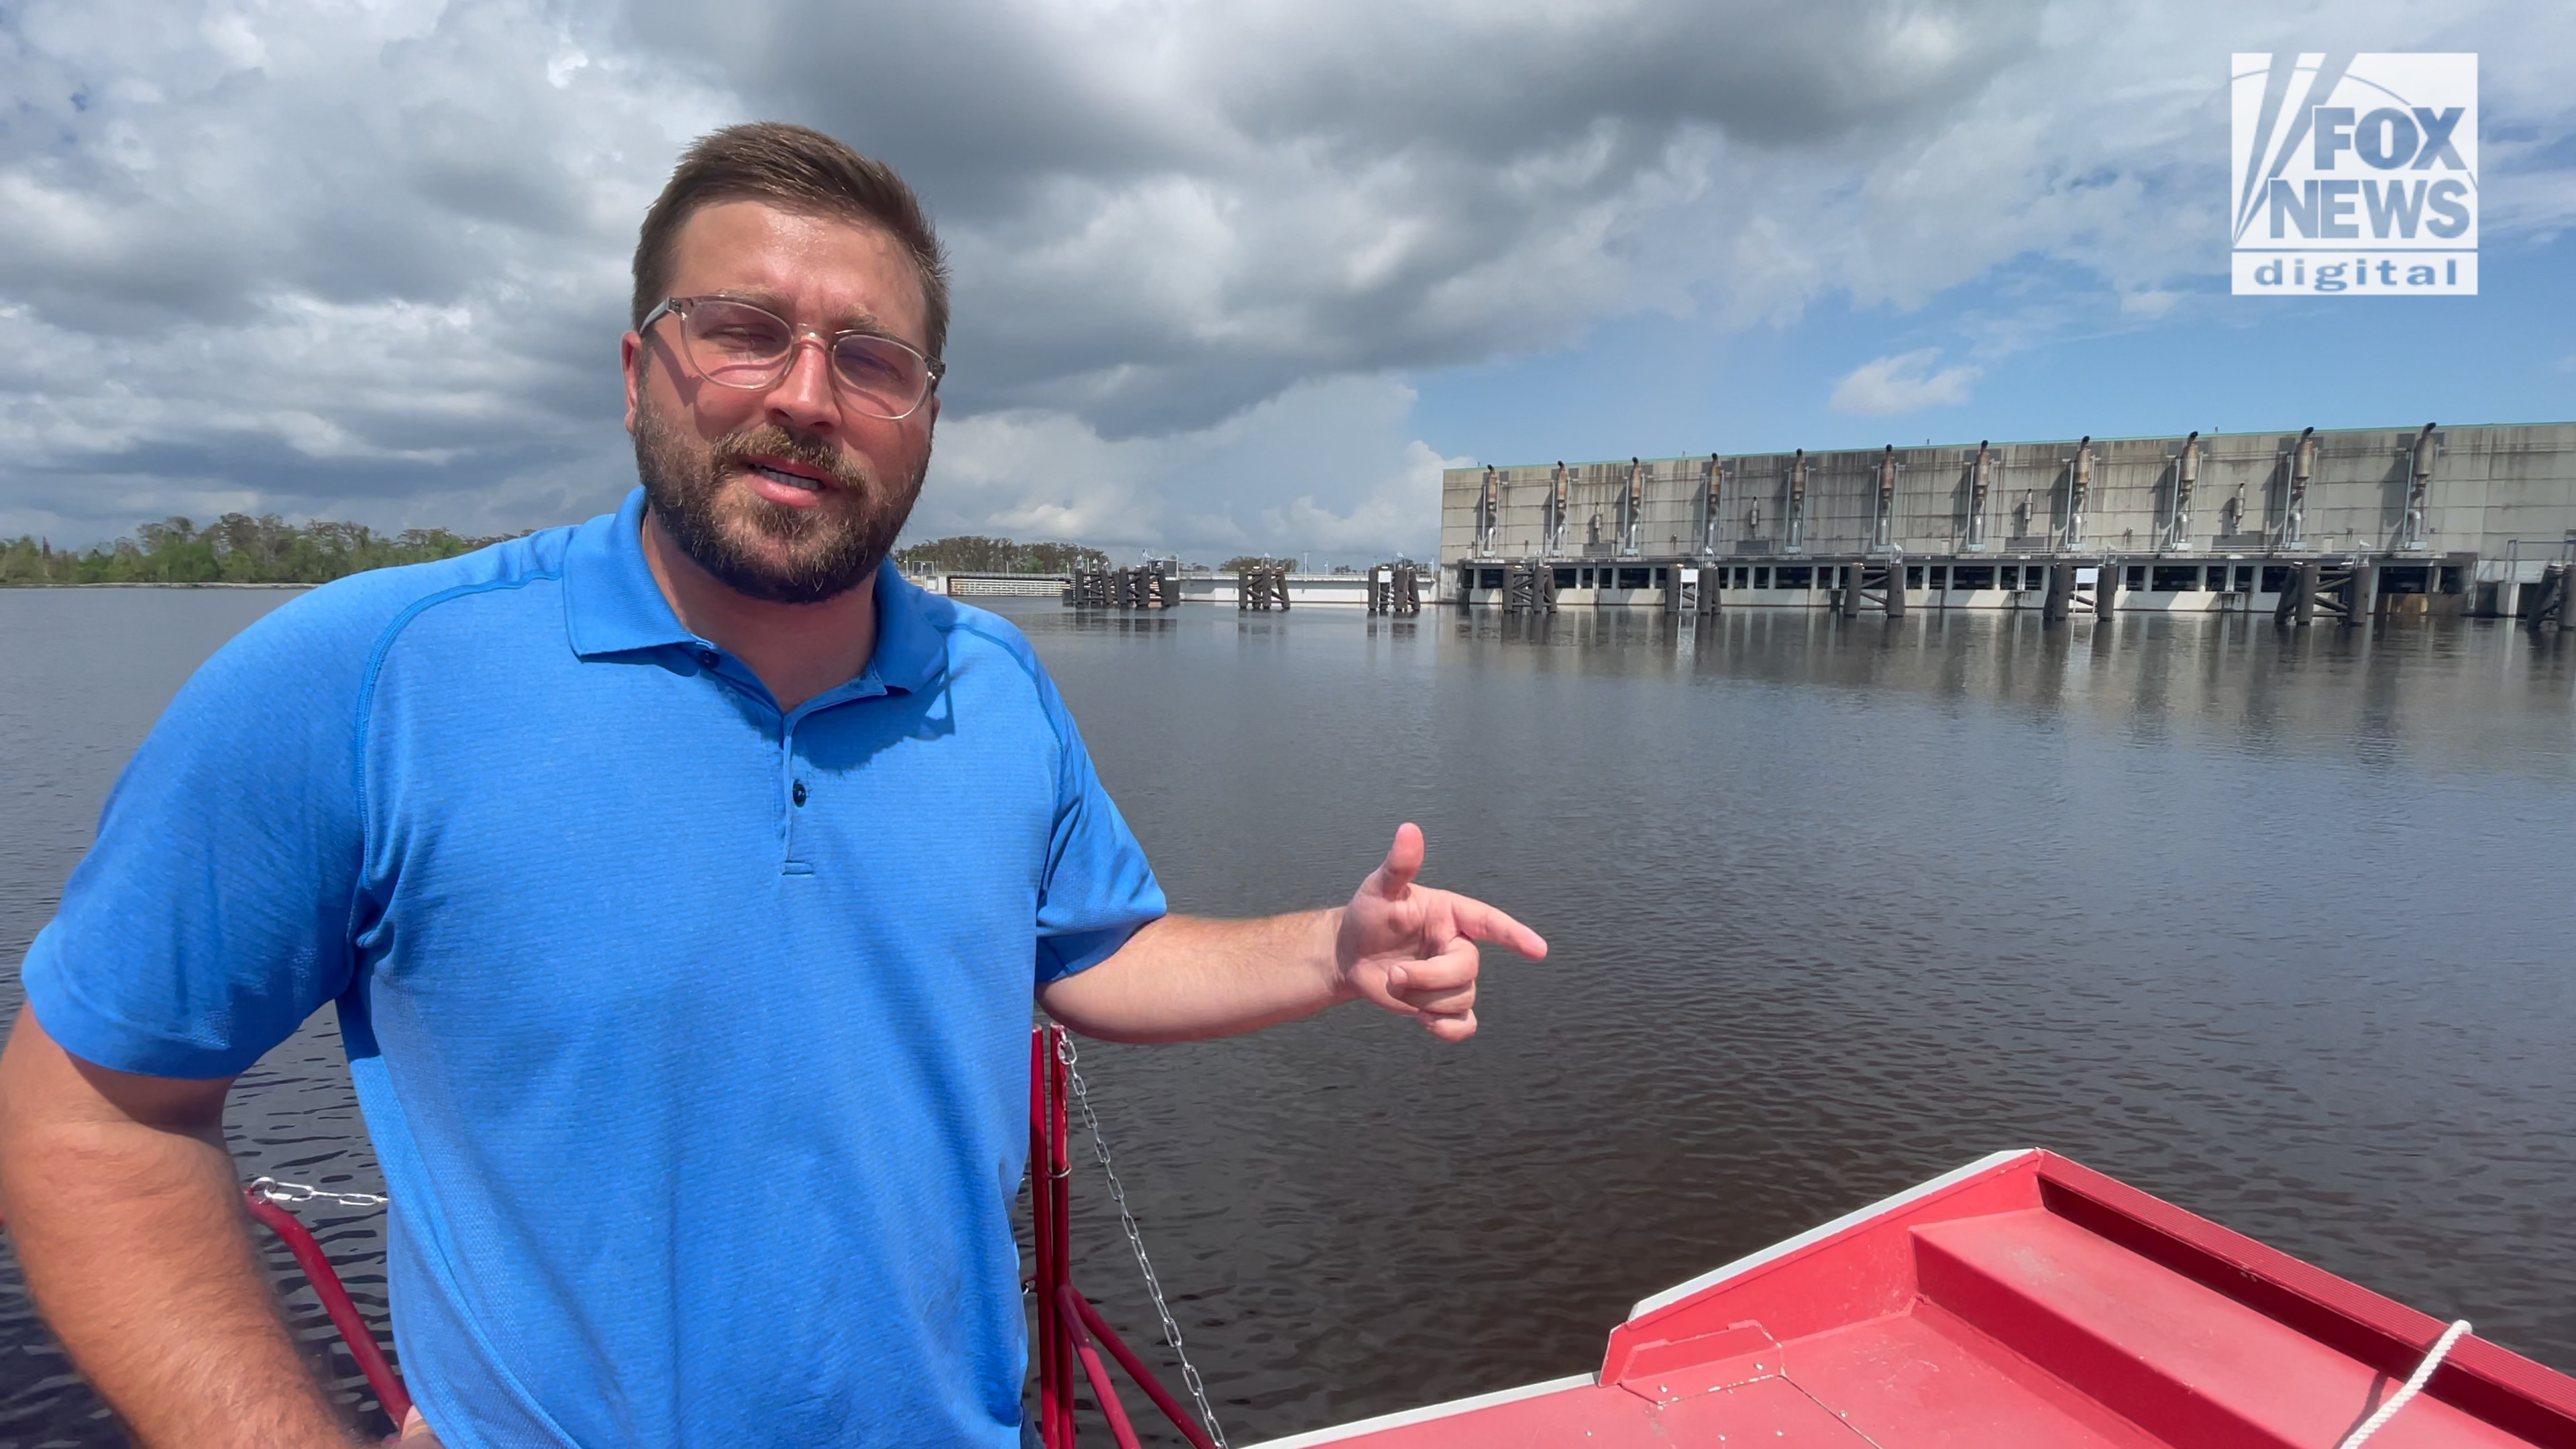 Hurricane Ida Recovery: Louisiana mayor says government levee system was disastrous for his town